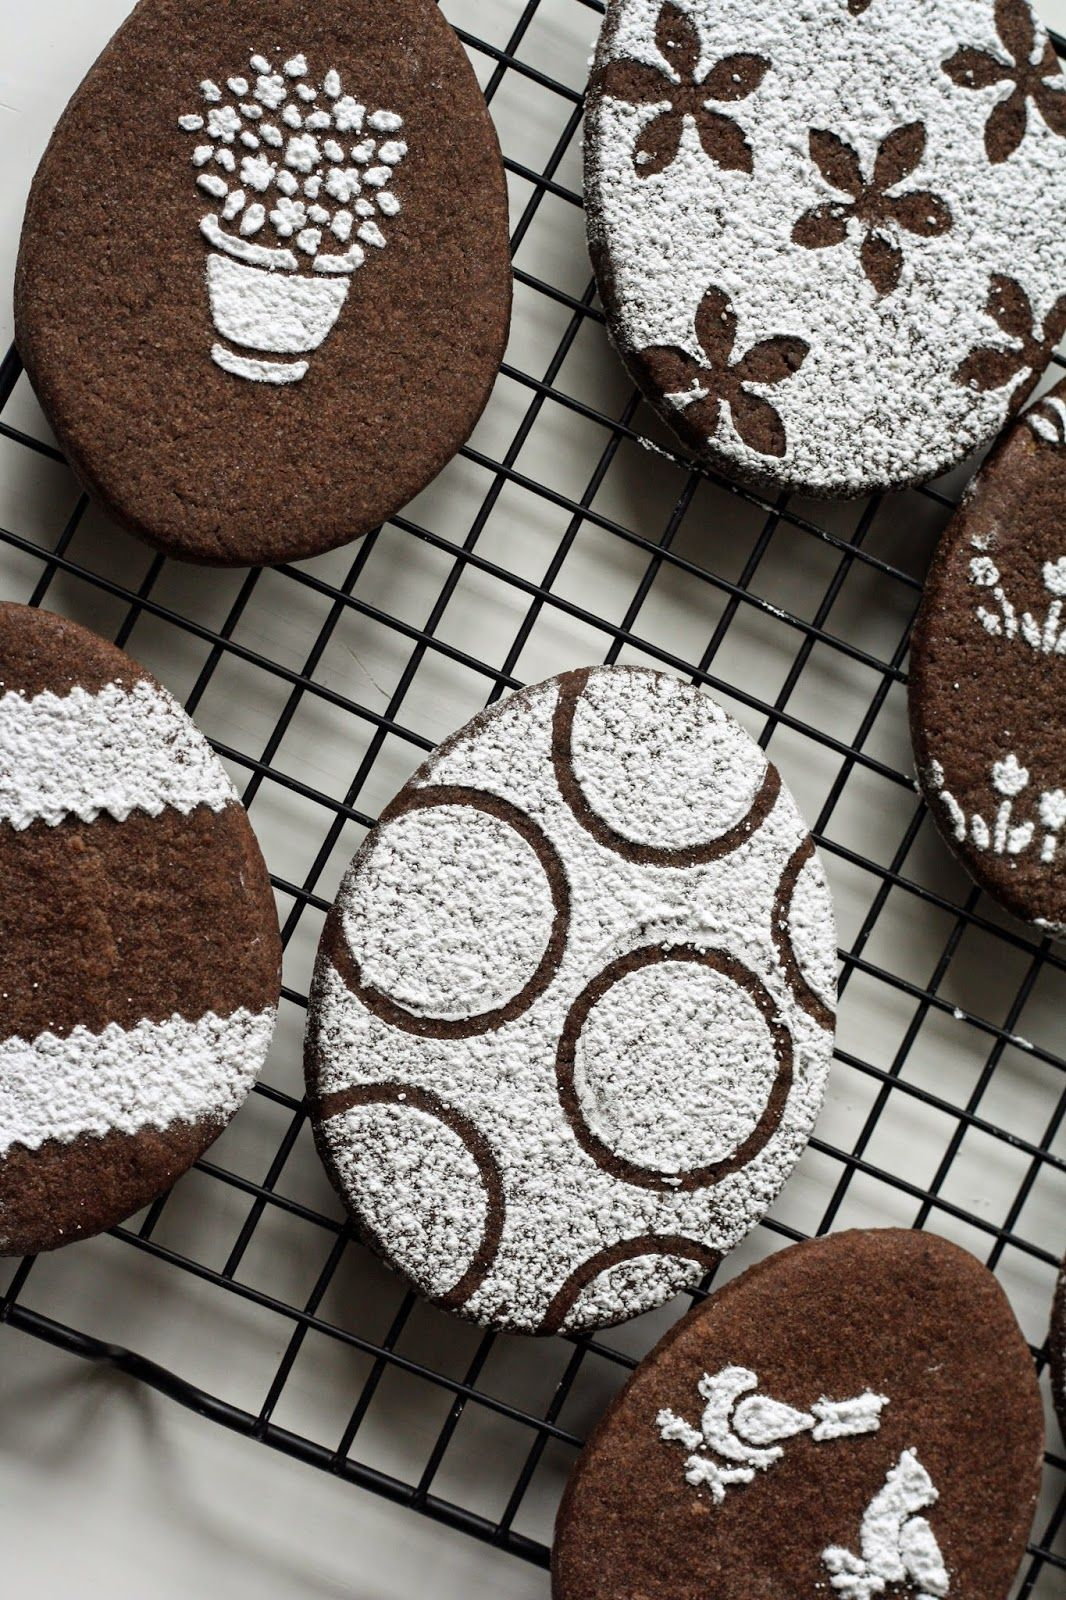 Use stencils and powdered sugar to decorate chocolate ...